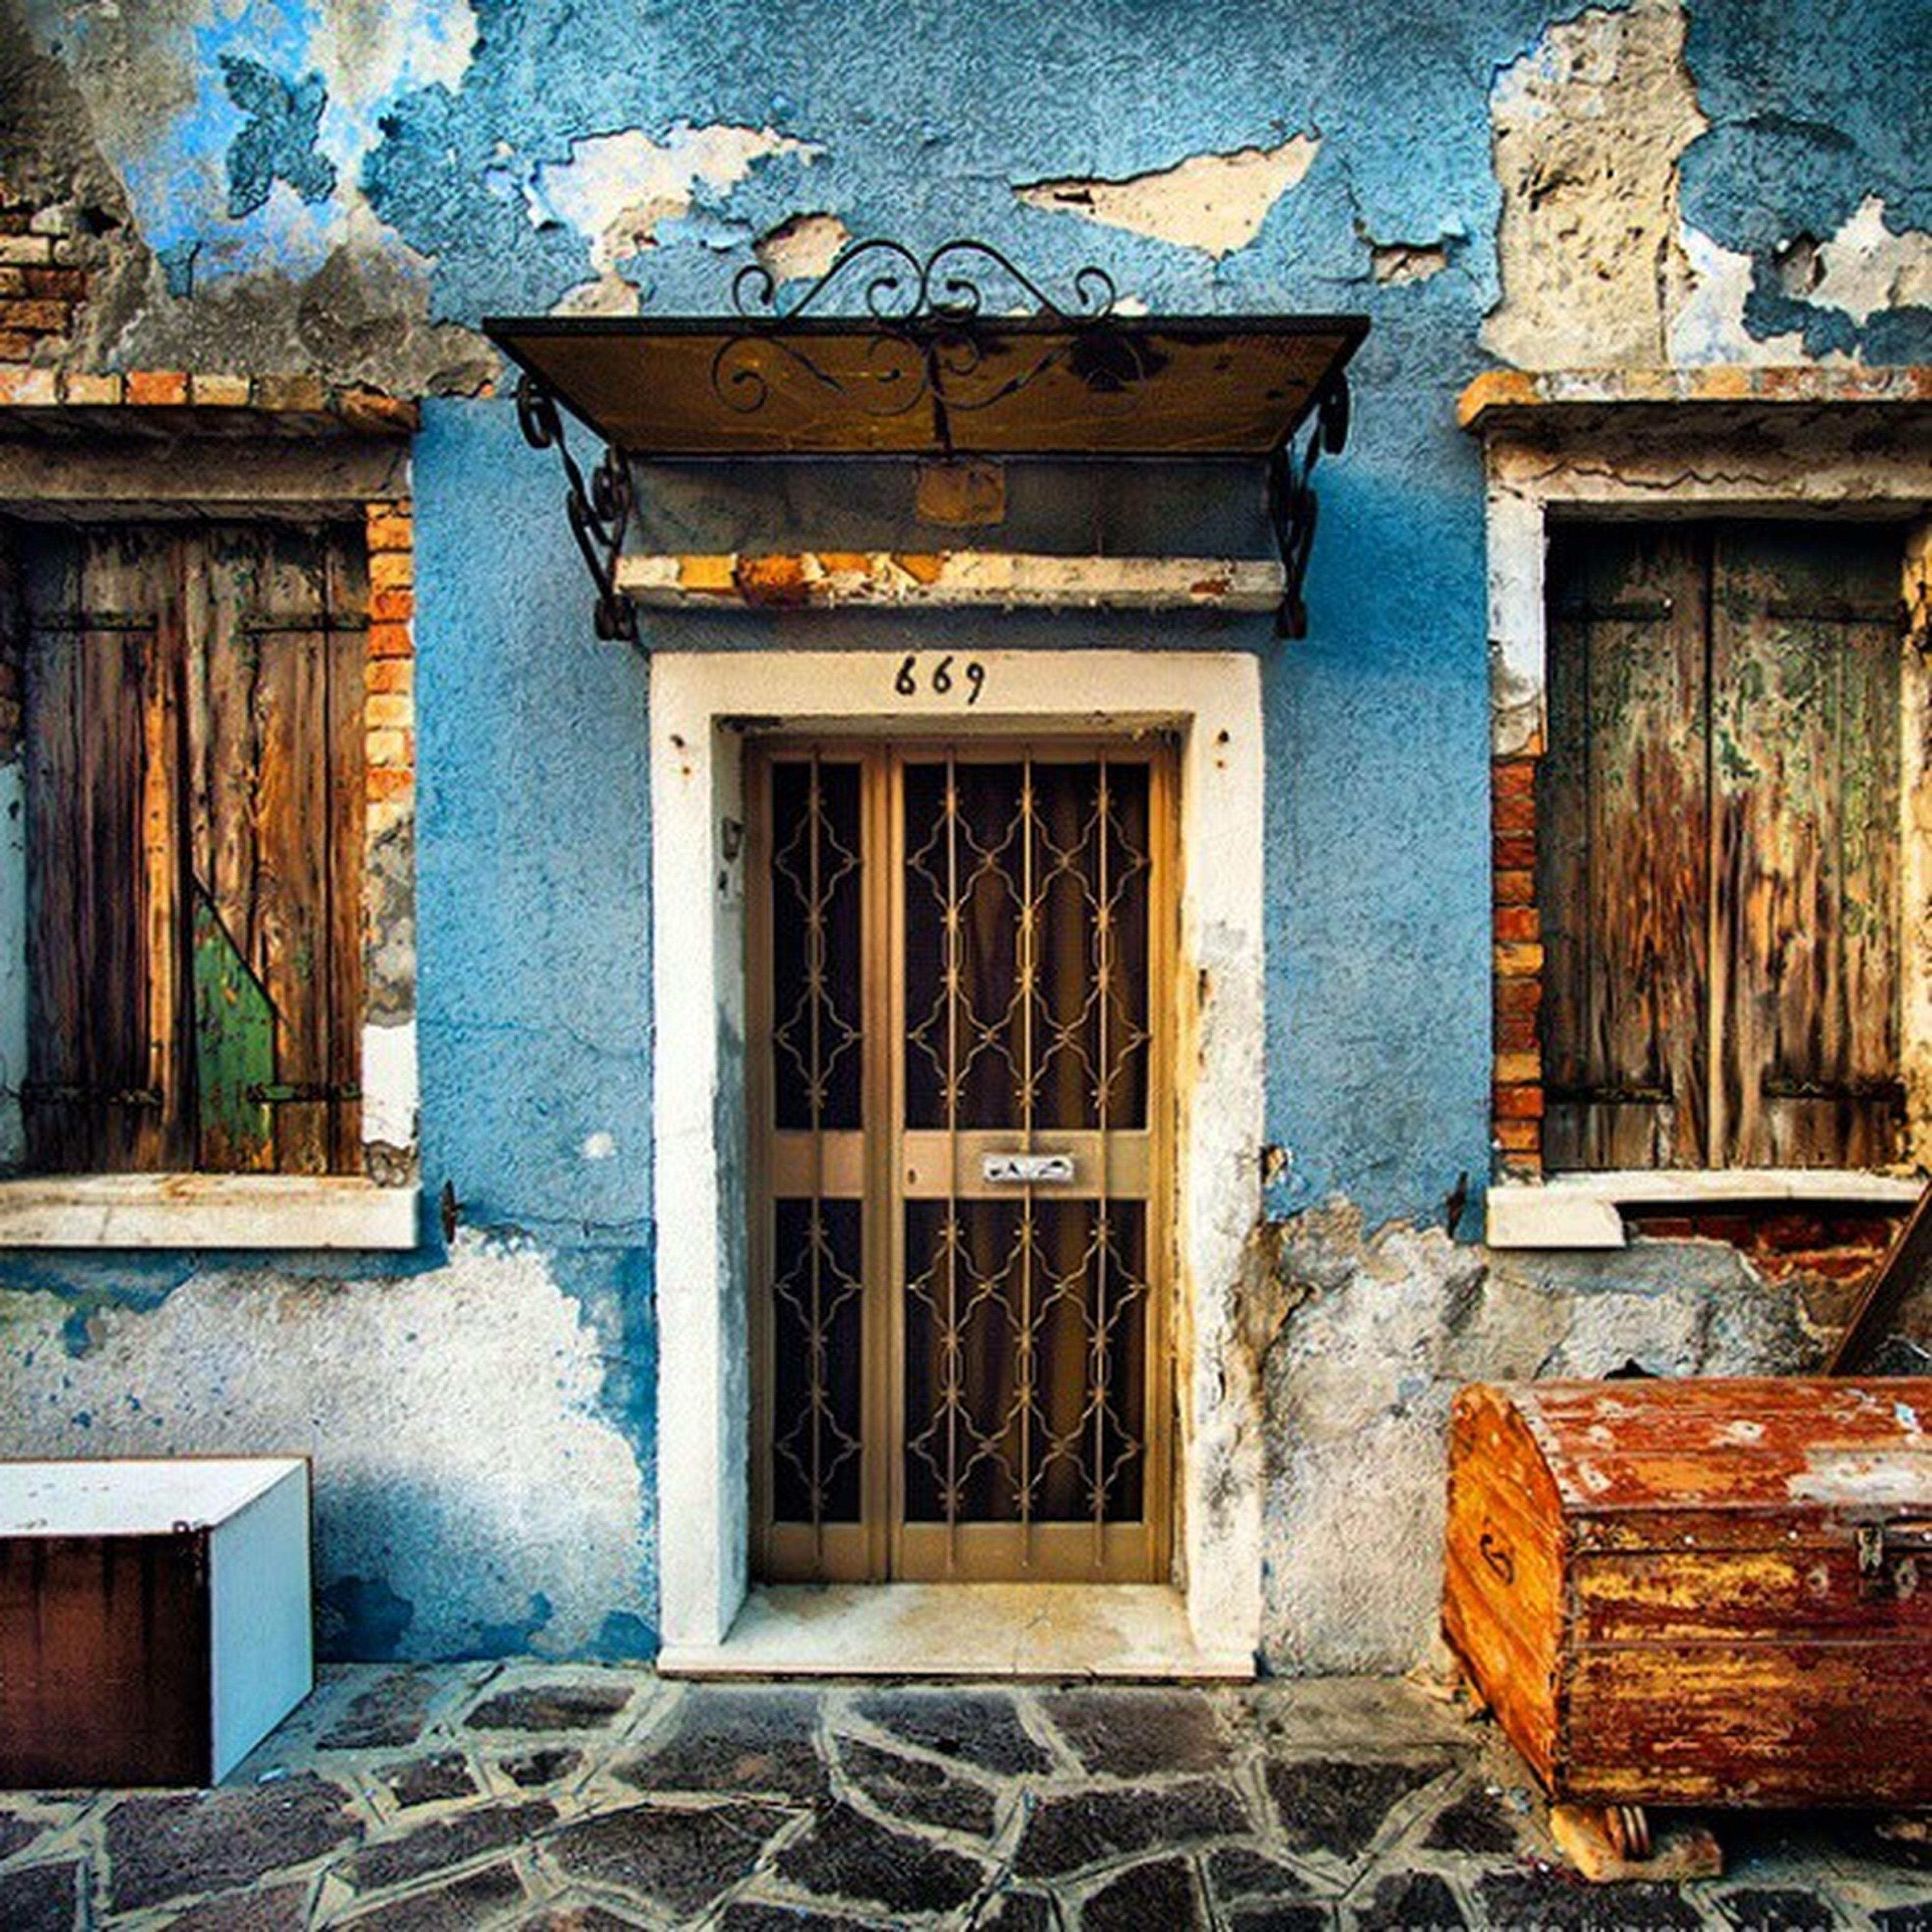 architecture, built structure, window, building exterior, house, door, old, wood - material, closed, weathered, abandoned, residential structure, entrance, damaged, obsolete, deterioration, residential building, run-down, day, open